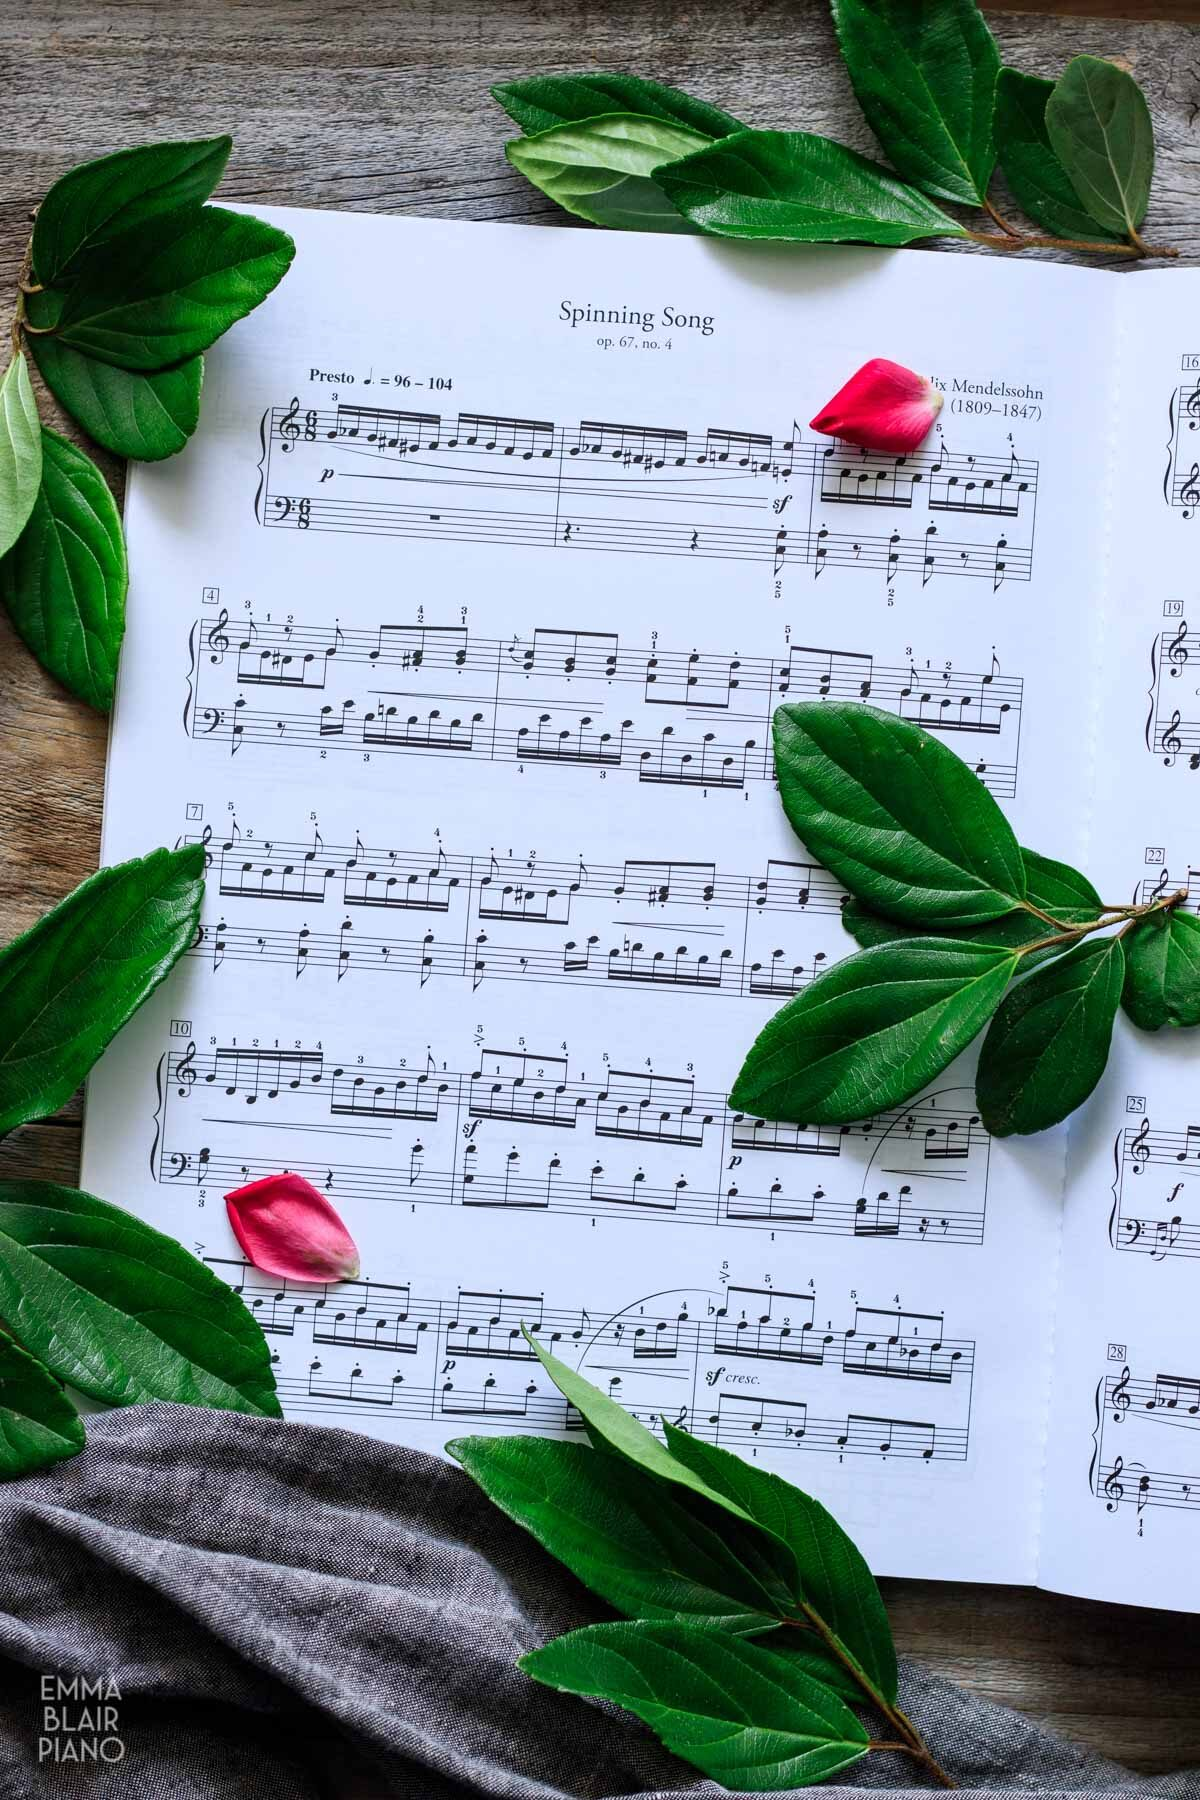 classical sheet music with green leaves and pink rose petals